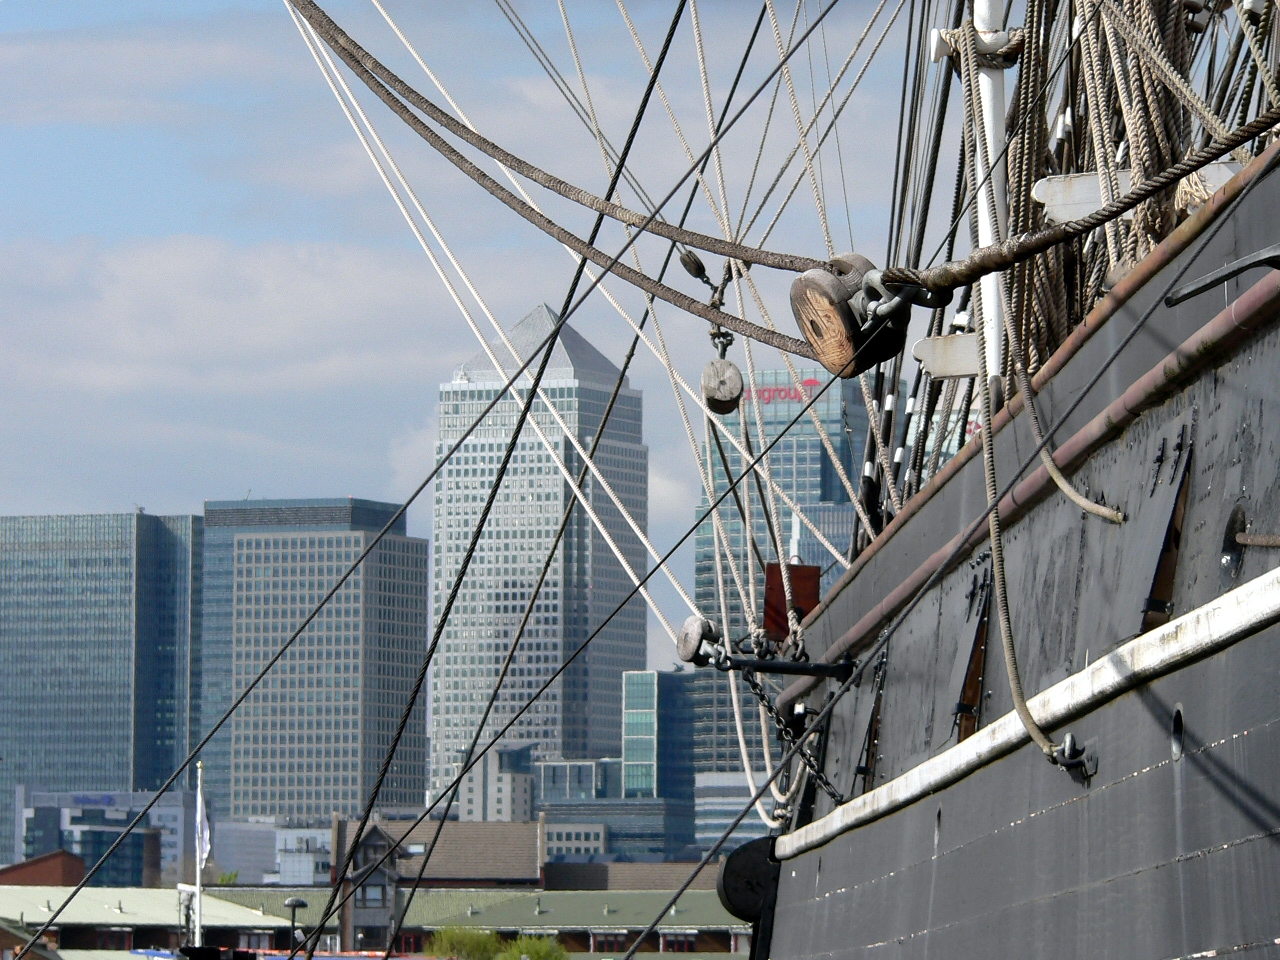 Canary Wharf as seen from the Cutty Sark at Greenwich